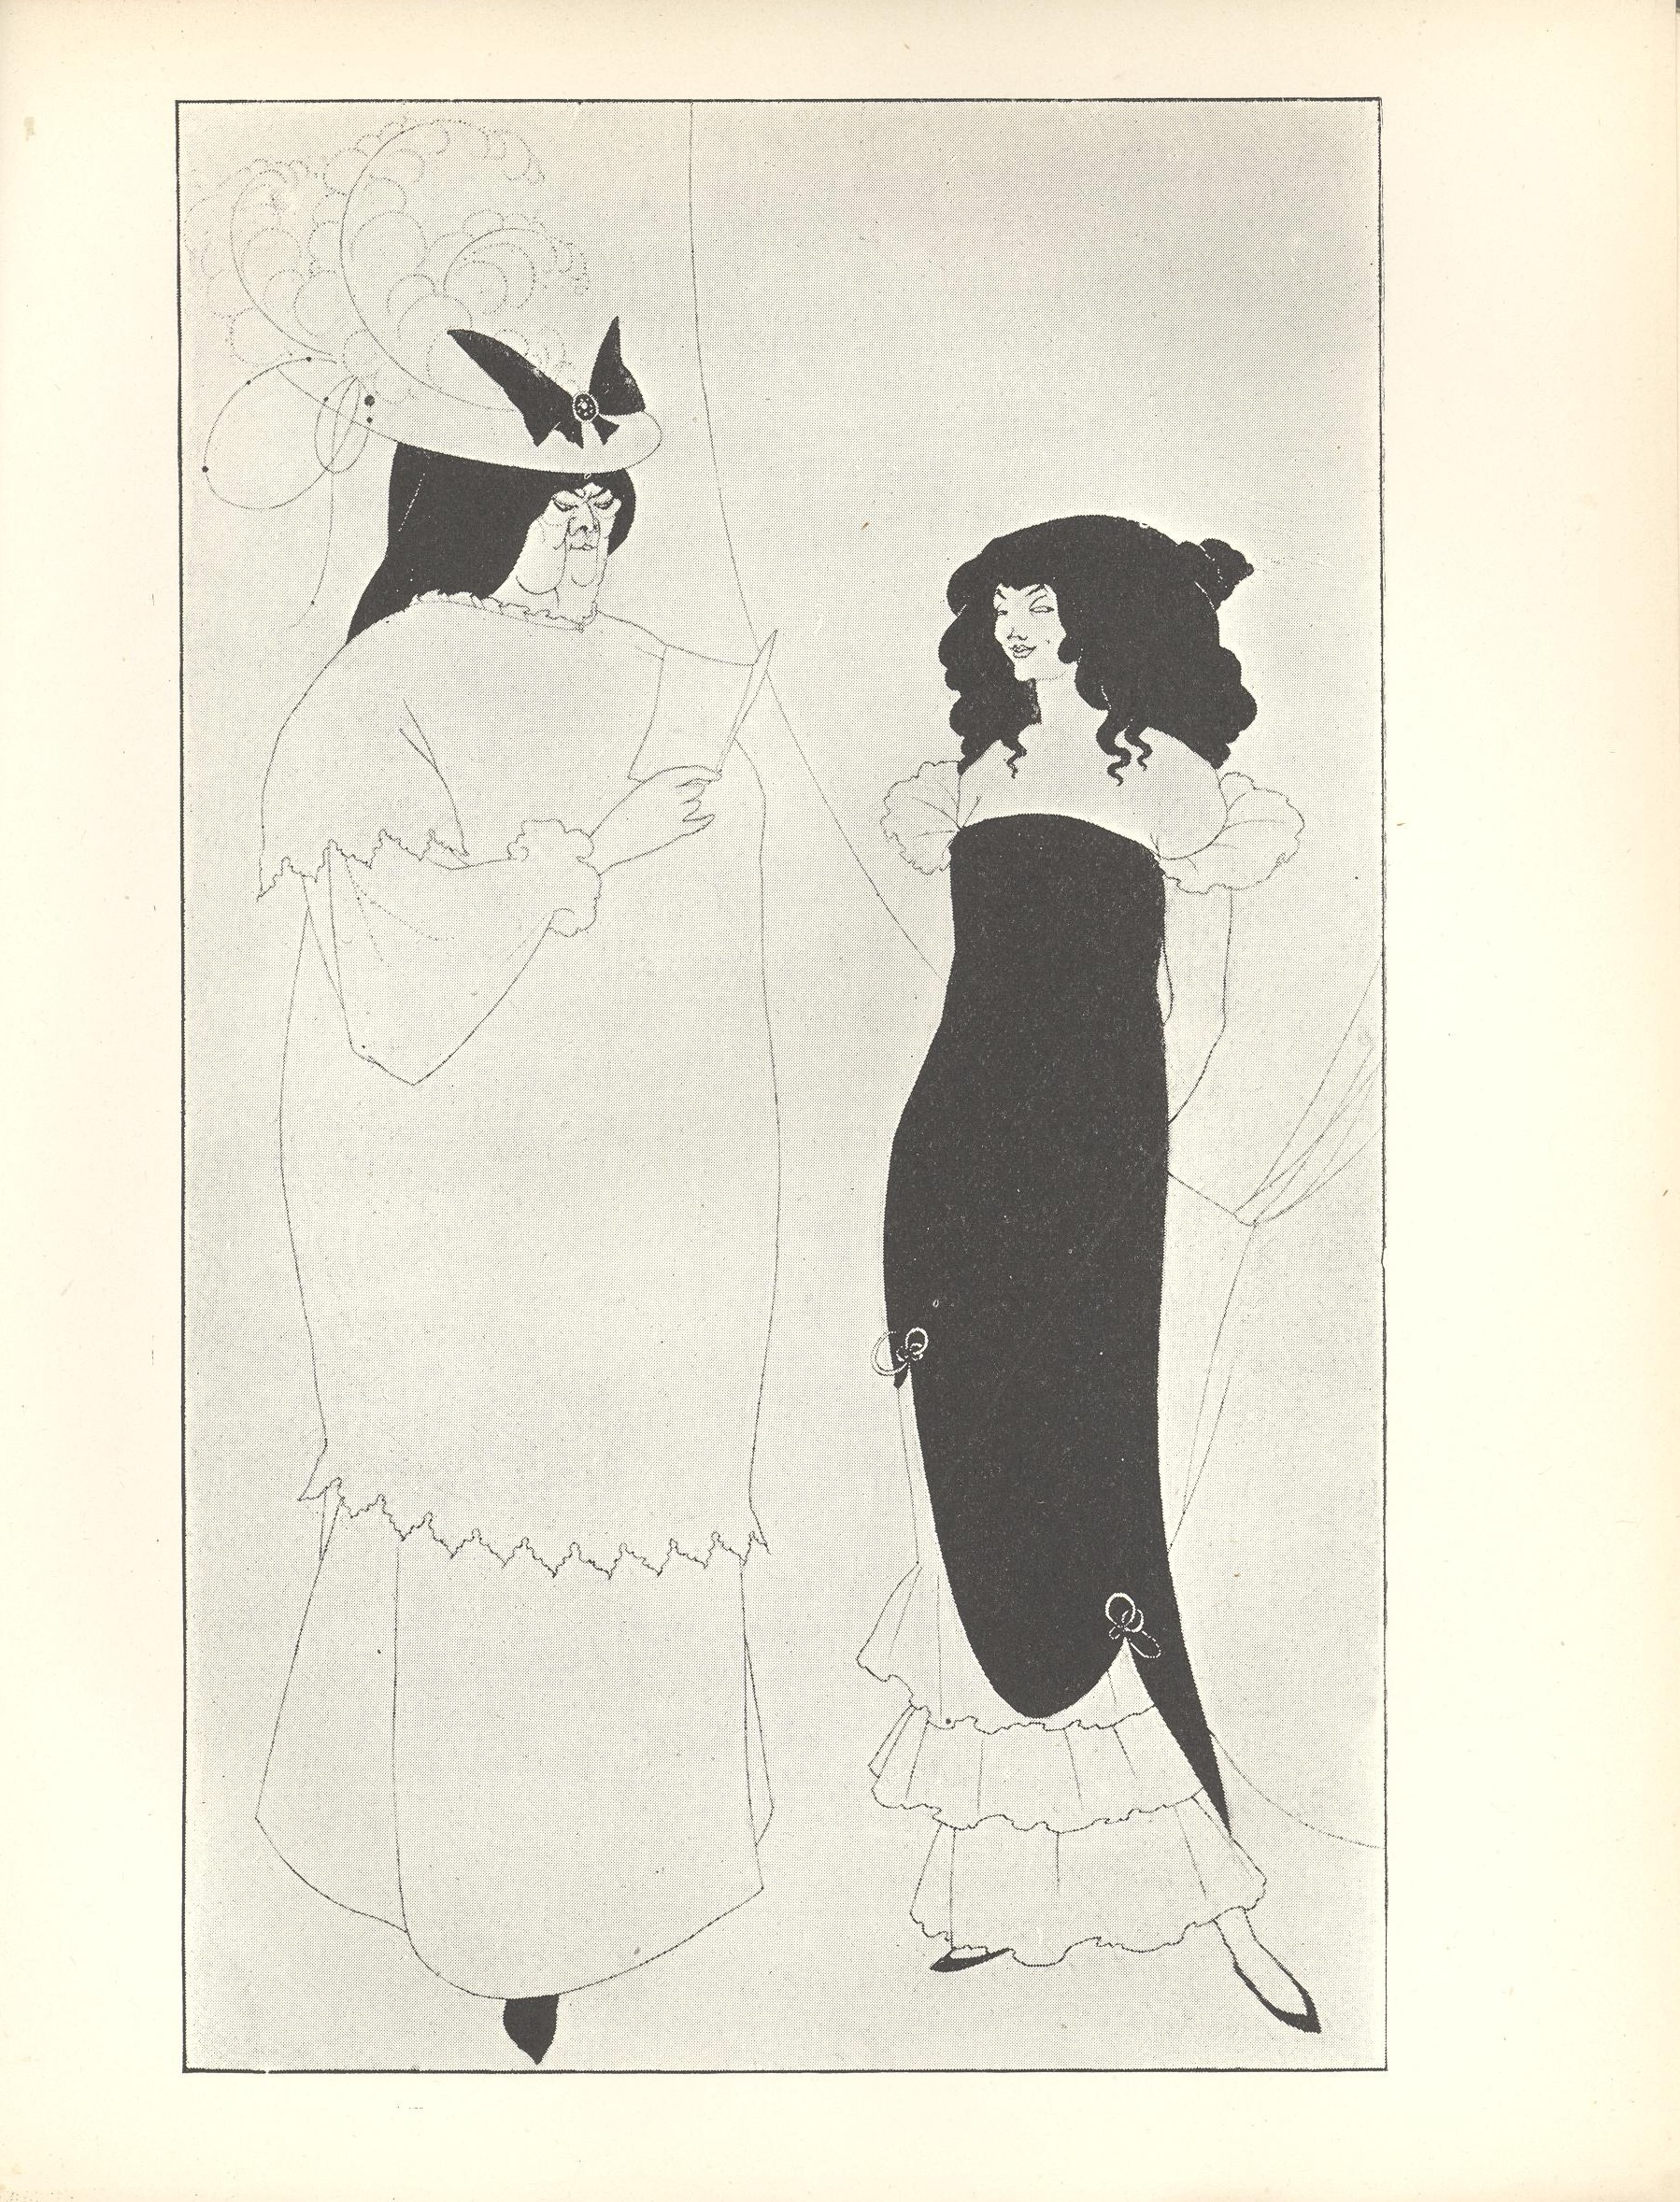 Two full length women face each other in front of a theatrical curtain This curtain is in the middle ground and takes up 1 3rd of the image The curtain is positioned behind the younger woman dividing the image in half vertically To the left there is an older larger woman with black hair who fills almost the entire left side She is wearing an elaborate hat and reading a book to a smaller young woman to her right This young woman is wearing an off the shoulder black evening dress standing with her hands behind her back and looking sideways to the right The image is vertically displayed